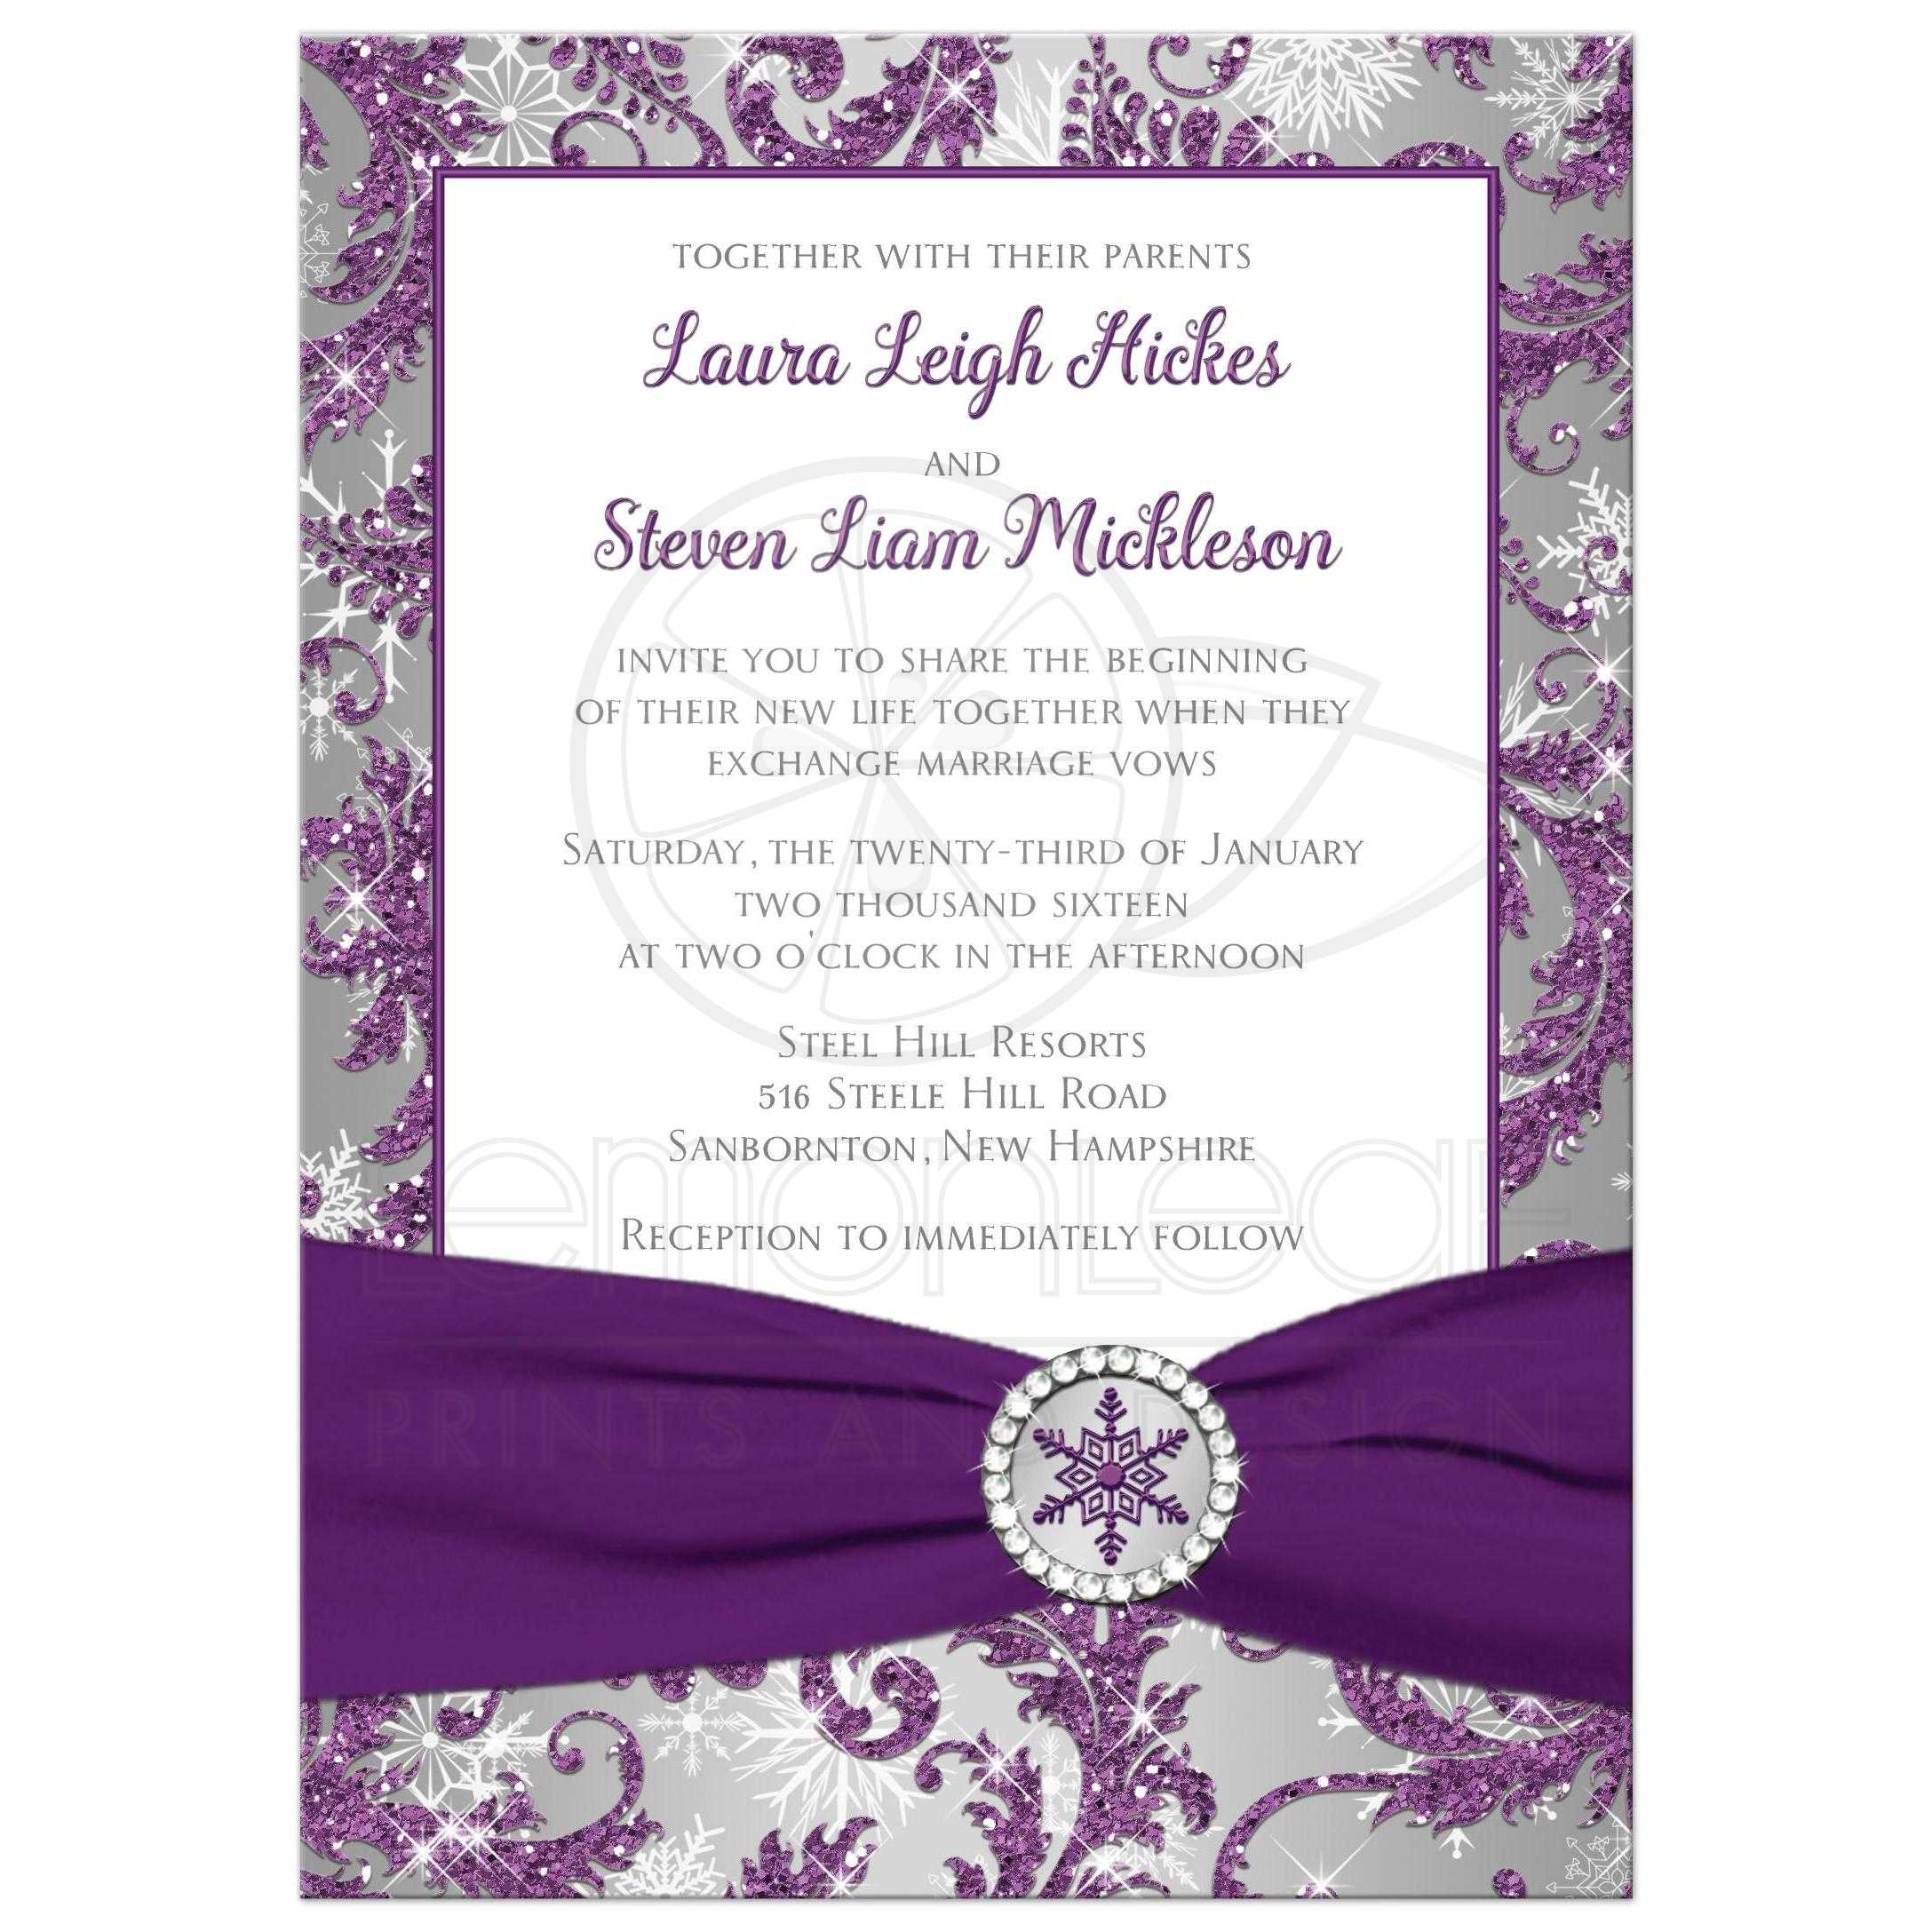 Winter Wonderland Wedding Invite In Ice Purple Silver And White Snowflakes With Ribbon Crystal